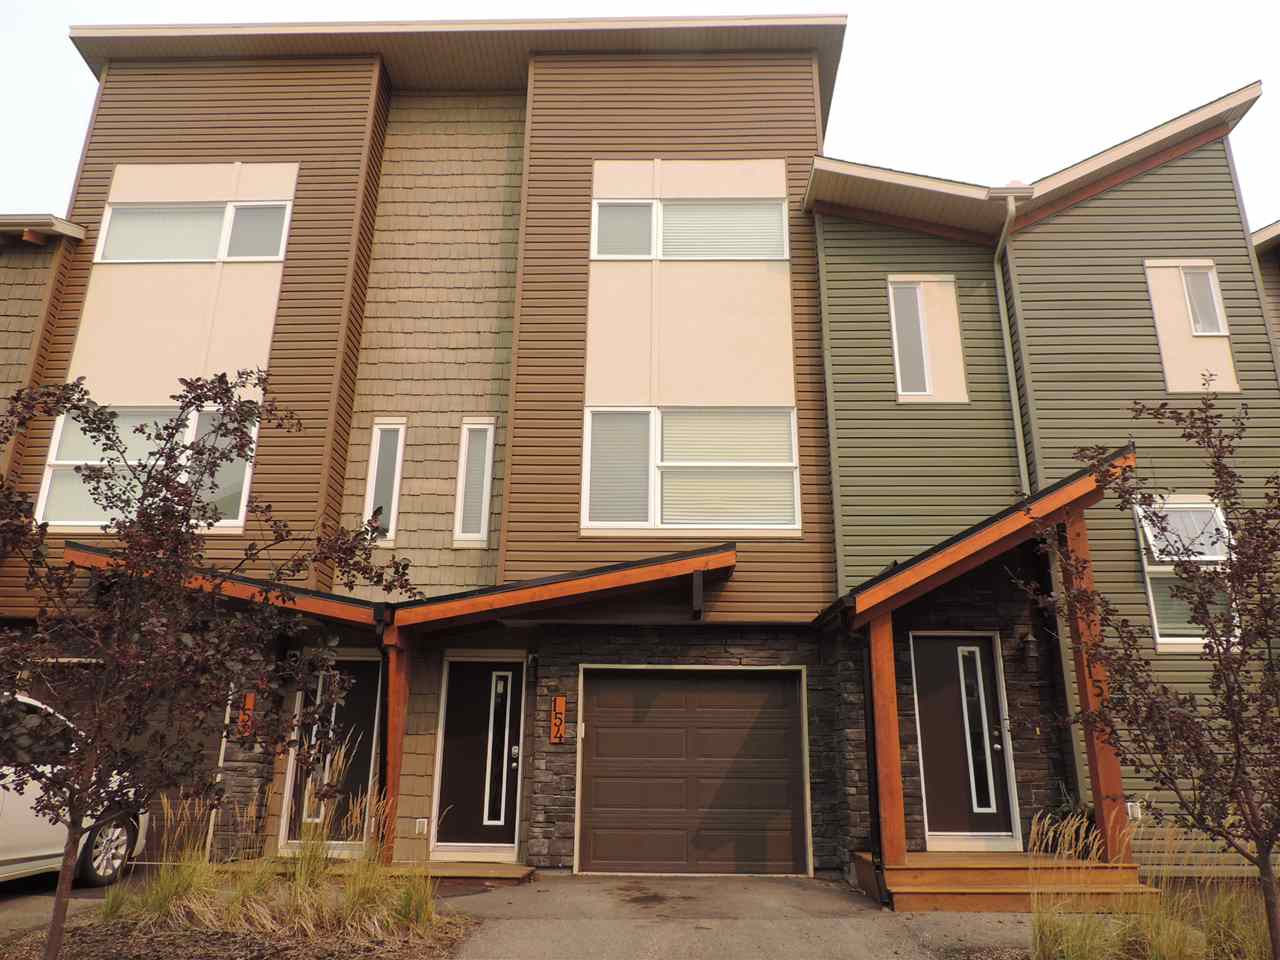 This 2 storey condo is 985 sq. ft. with front attached single garage. The main floor is an open concept with large kitchen with lots of cupboards and counter space. The counters are granite and a brand new fridge has been installed. This level has lots of windows that bring in loads of natural light to the dinning area and living room. there is also a large closet and access to the deck. The upper level has 2 bedroom and 2 bathrooms, walk in closets and upstairs laundry. The singles attached garage has ample storage space as well.      The door code is 1943